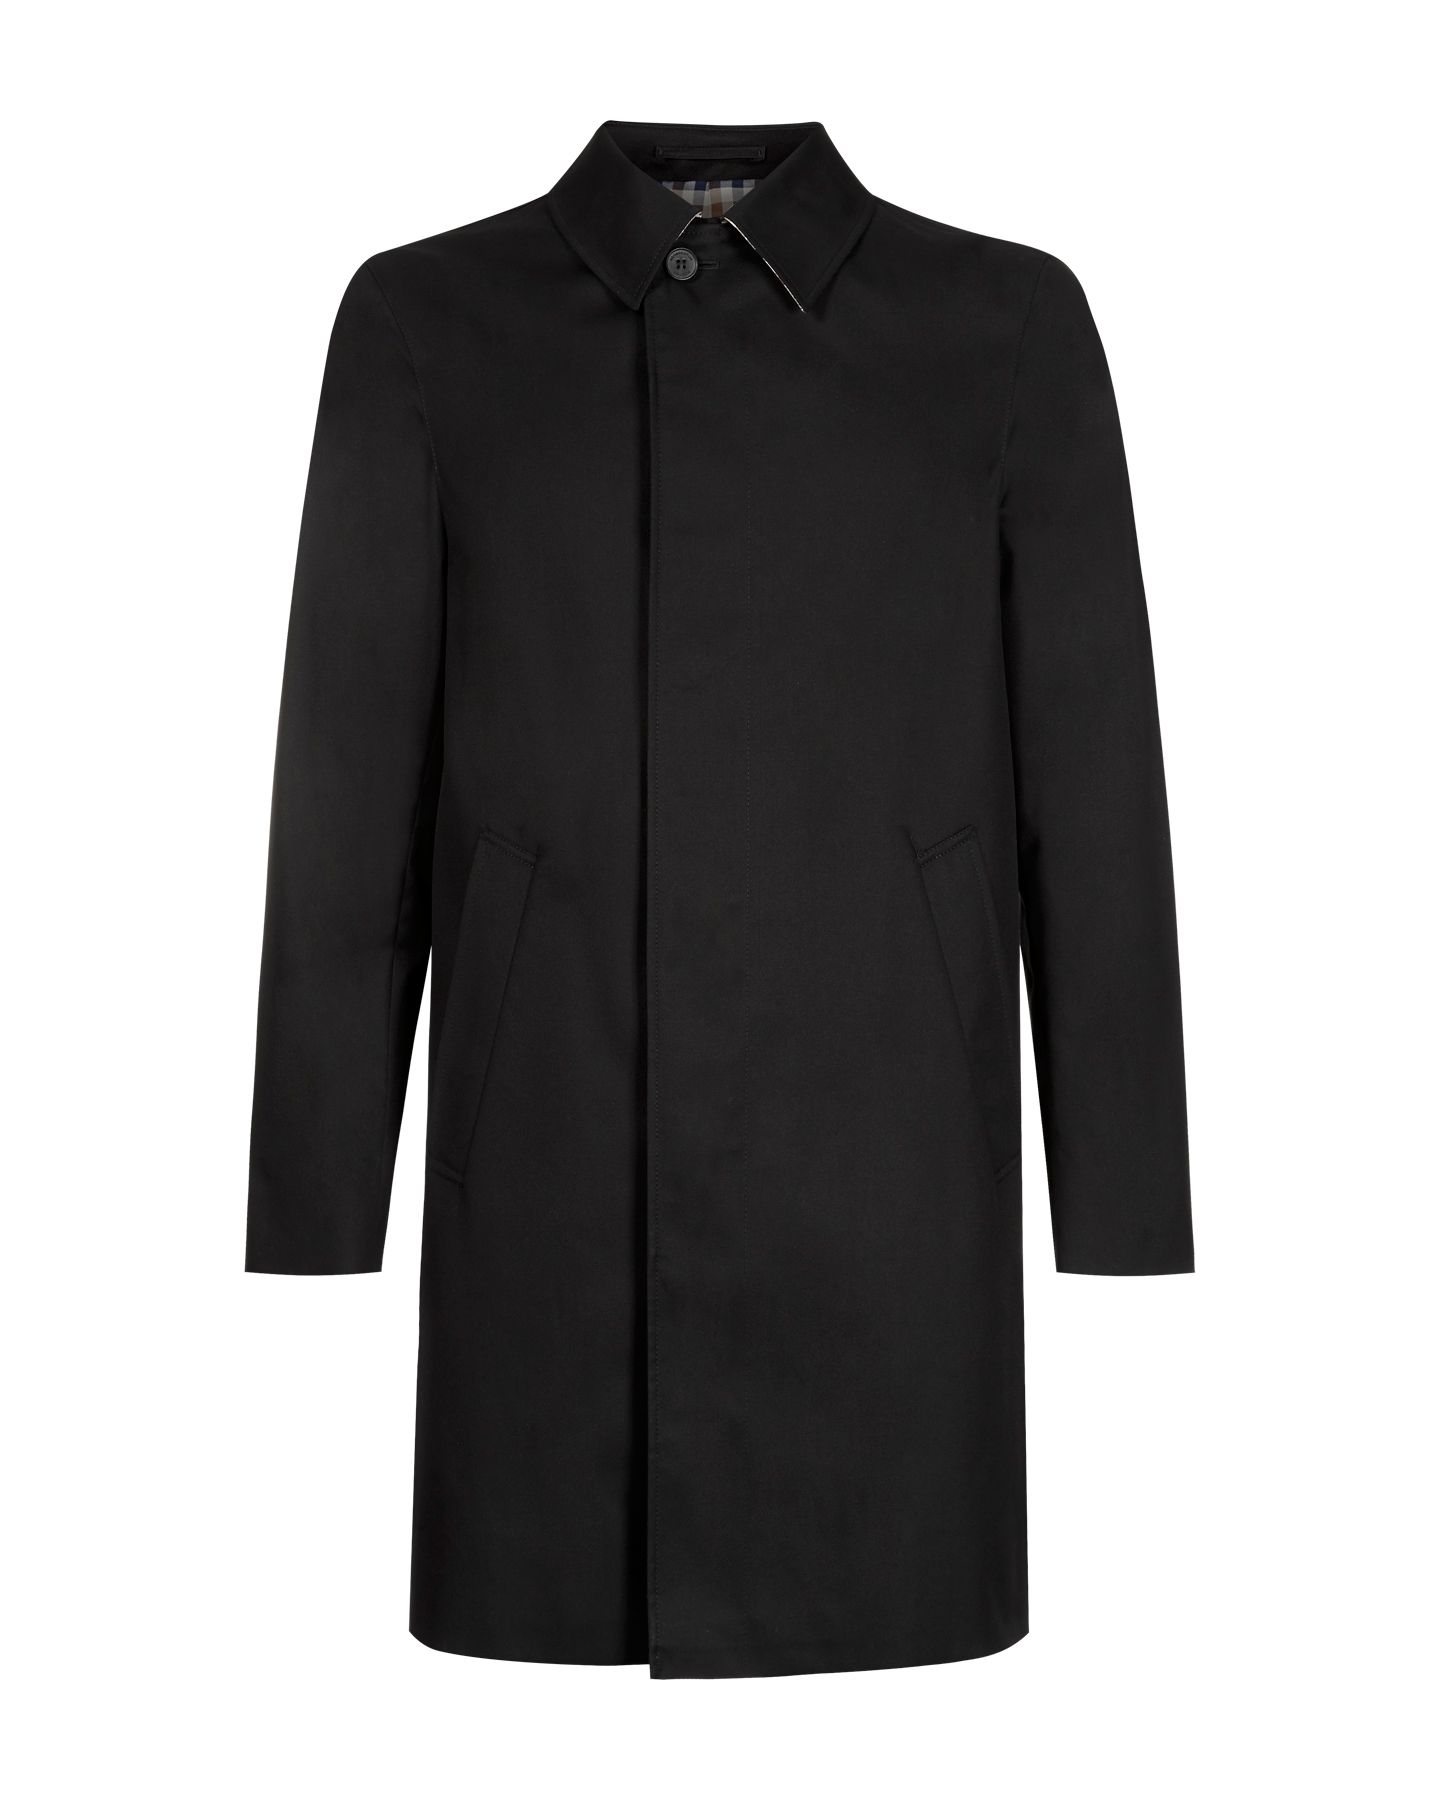 Broadgate single breasted raincoat